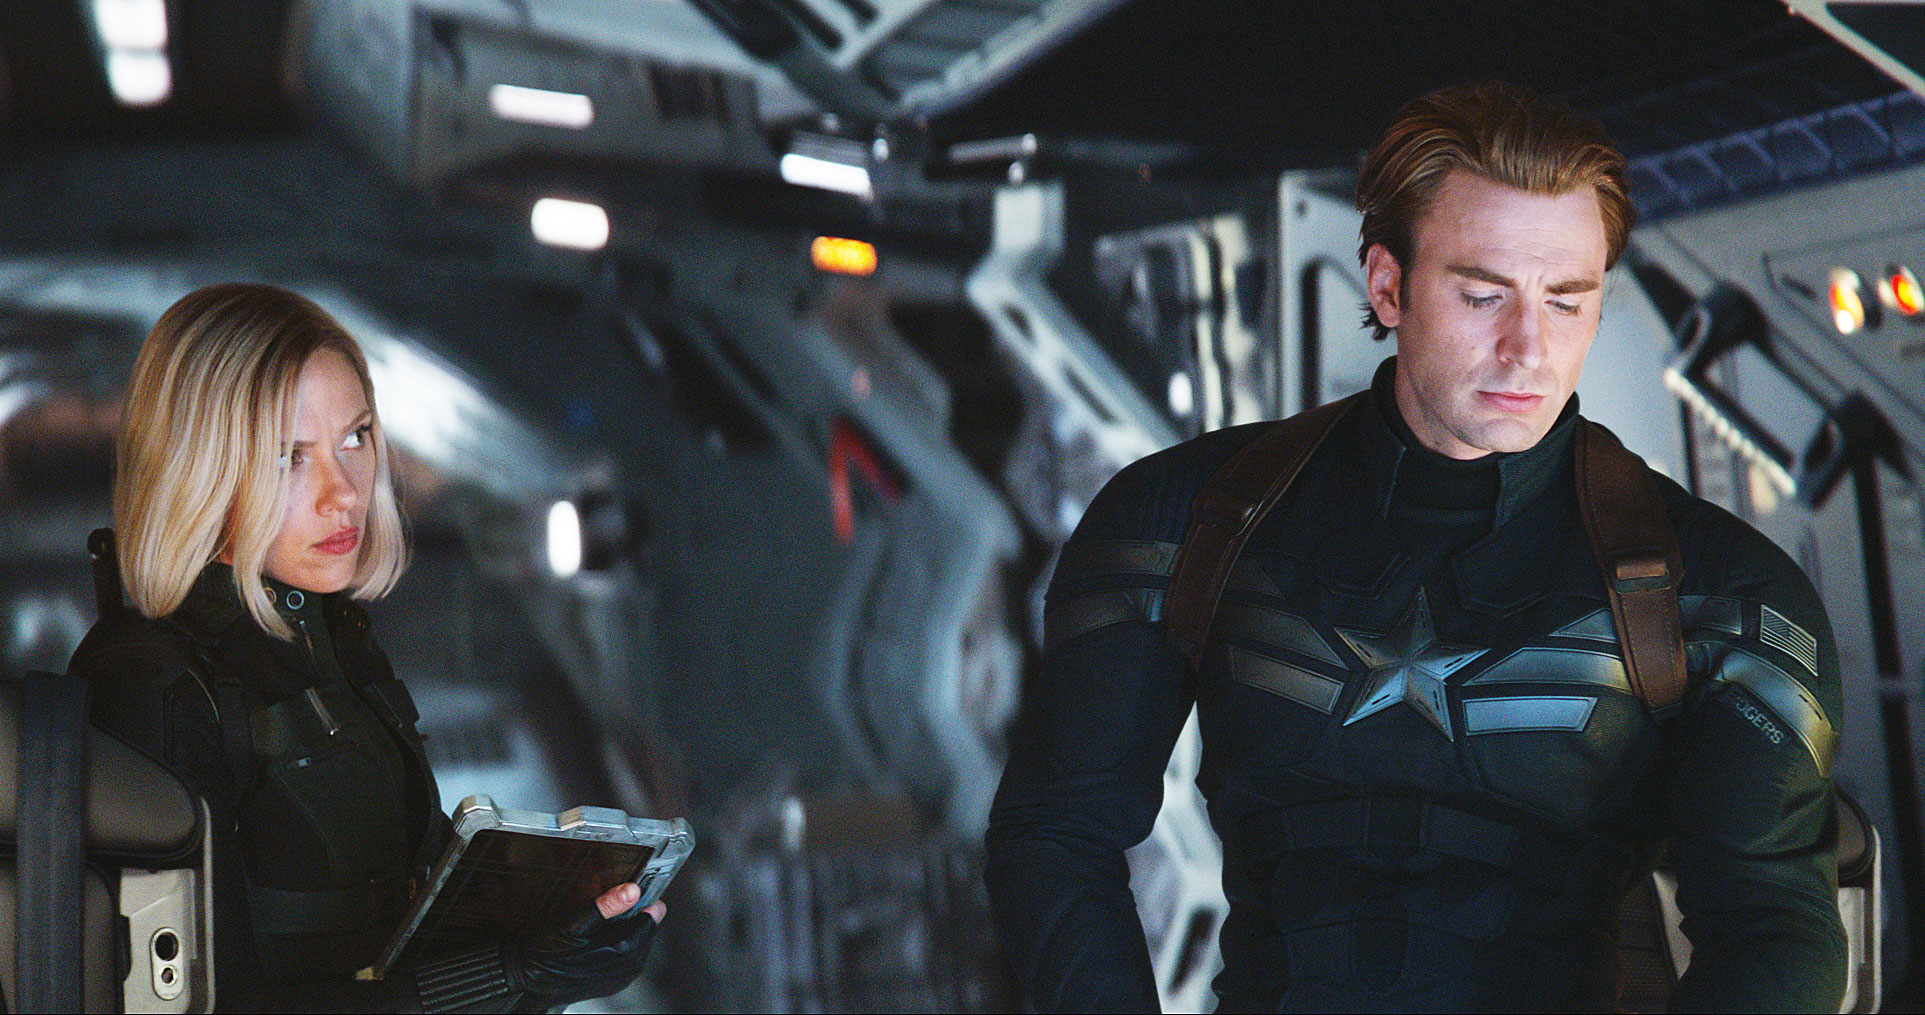 Avengers Endgame Movie Review Scarlett Johansson Chris Evans - Scarlett Johansson as Black Widow/Natasha Romanoff and Chris Evans as Captain America/Steve Rogers in 'Avengers: Endgame.